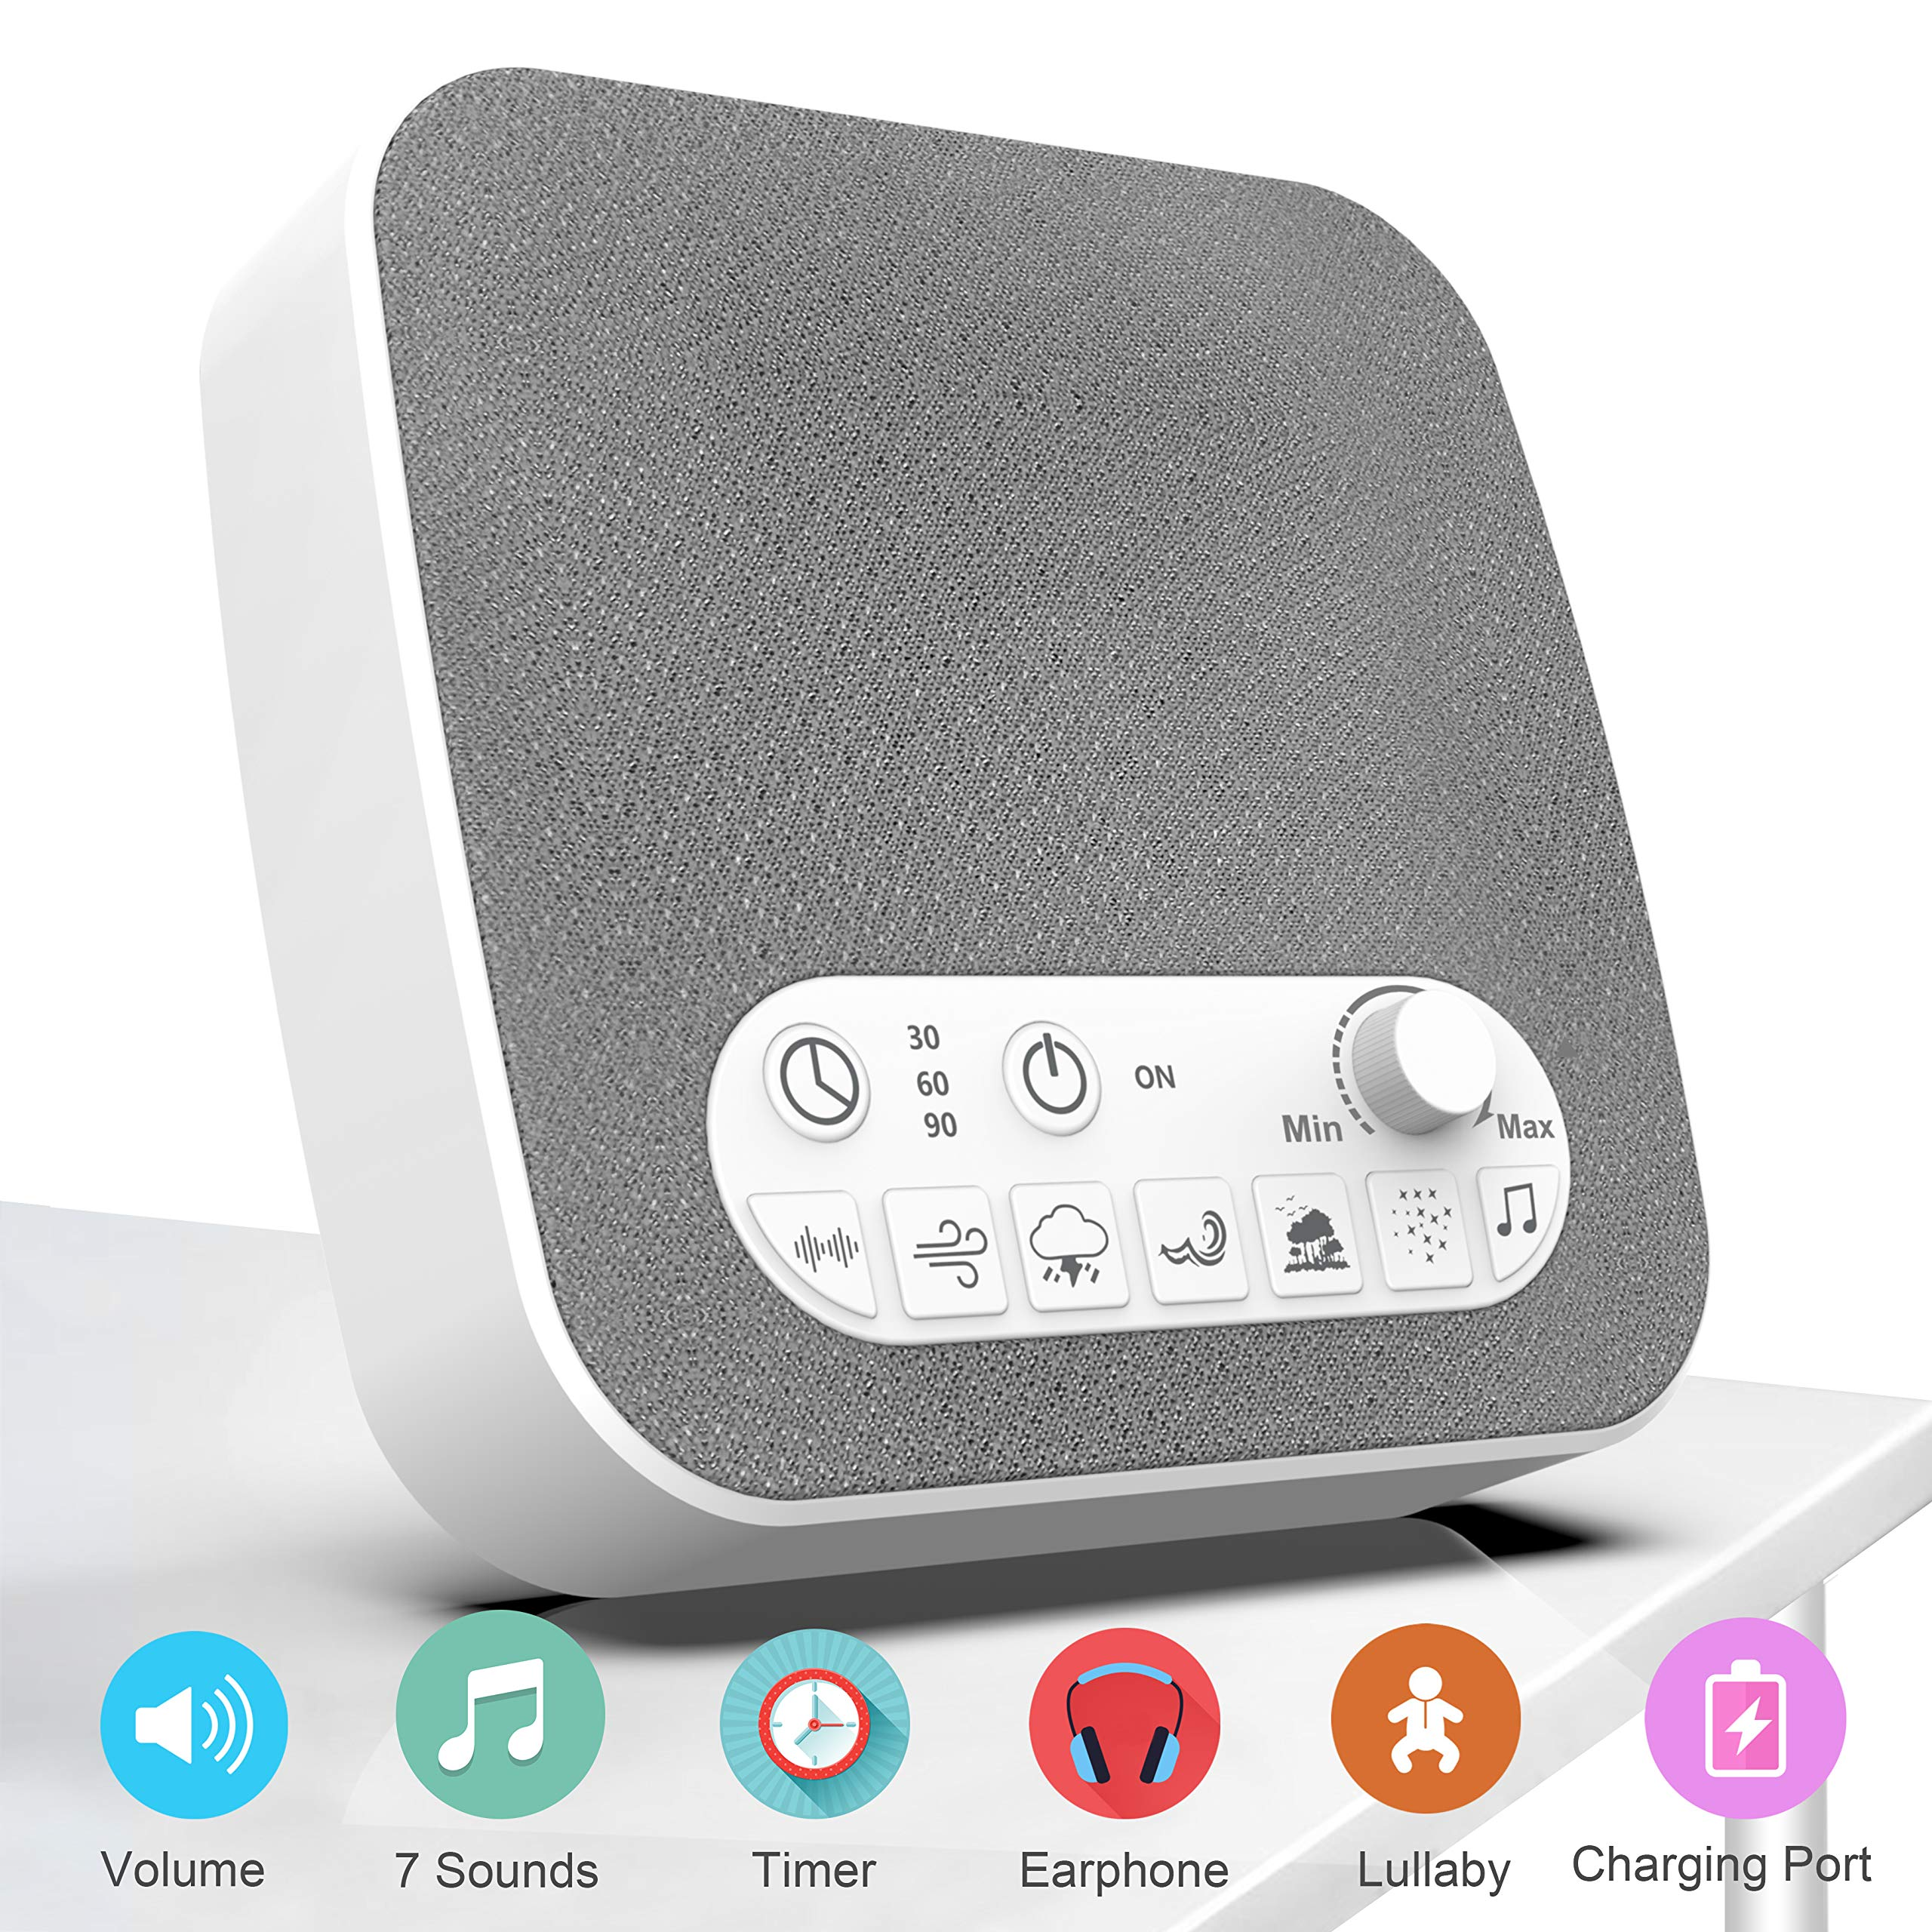 BESTHING White Noise Machine Sound Machine for Sleeping, Non-Looping Soothing Sounds, Portable Sleep Sound Therapy for Home, Office Travel / for Kids Adults by BESTHING